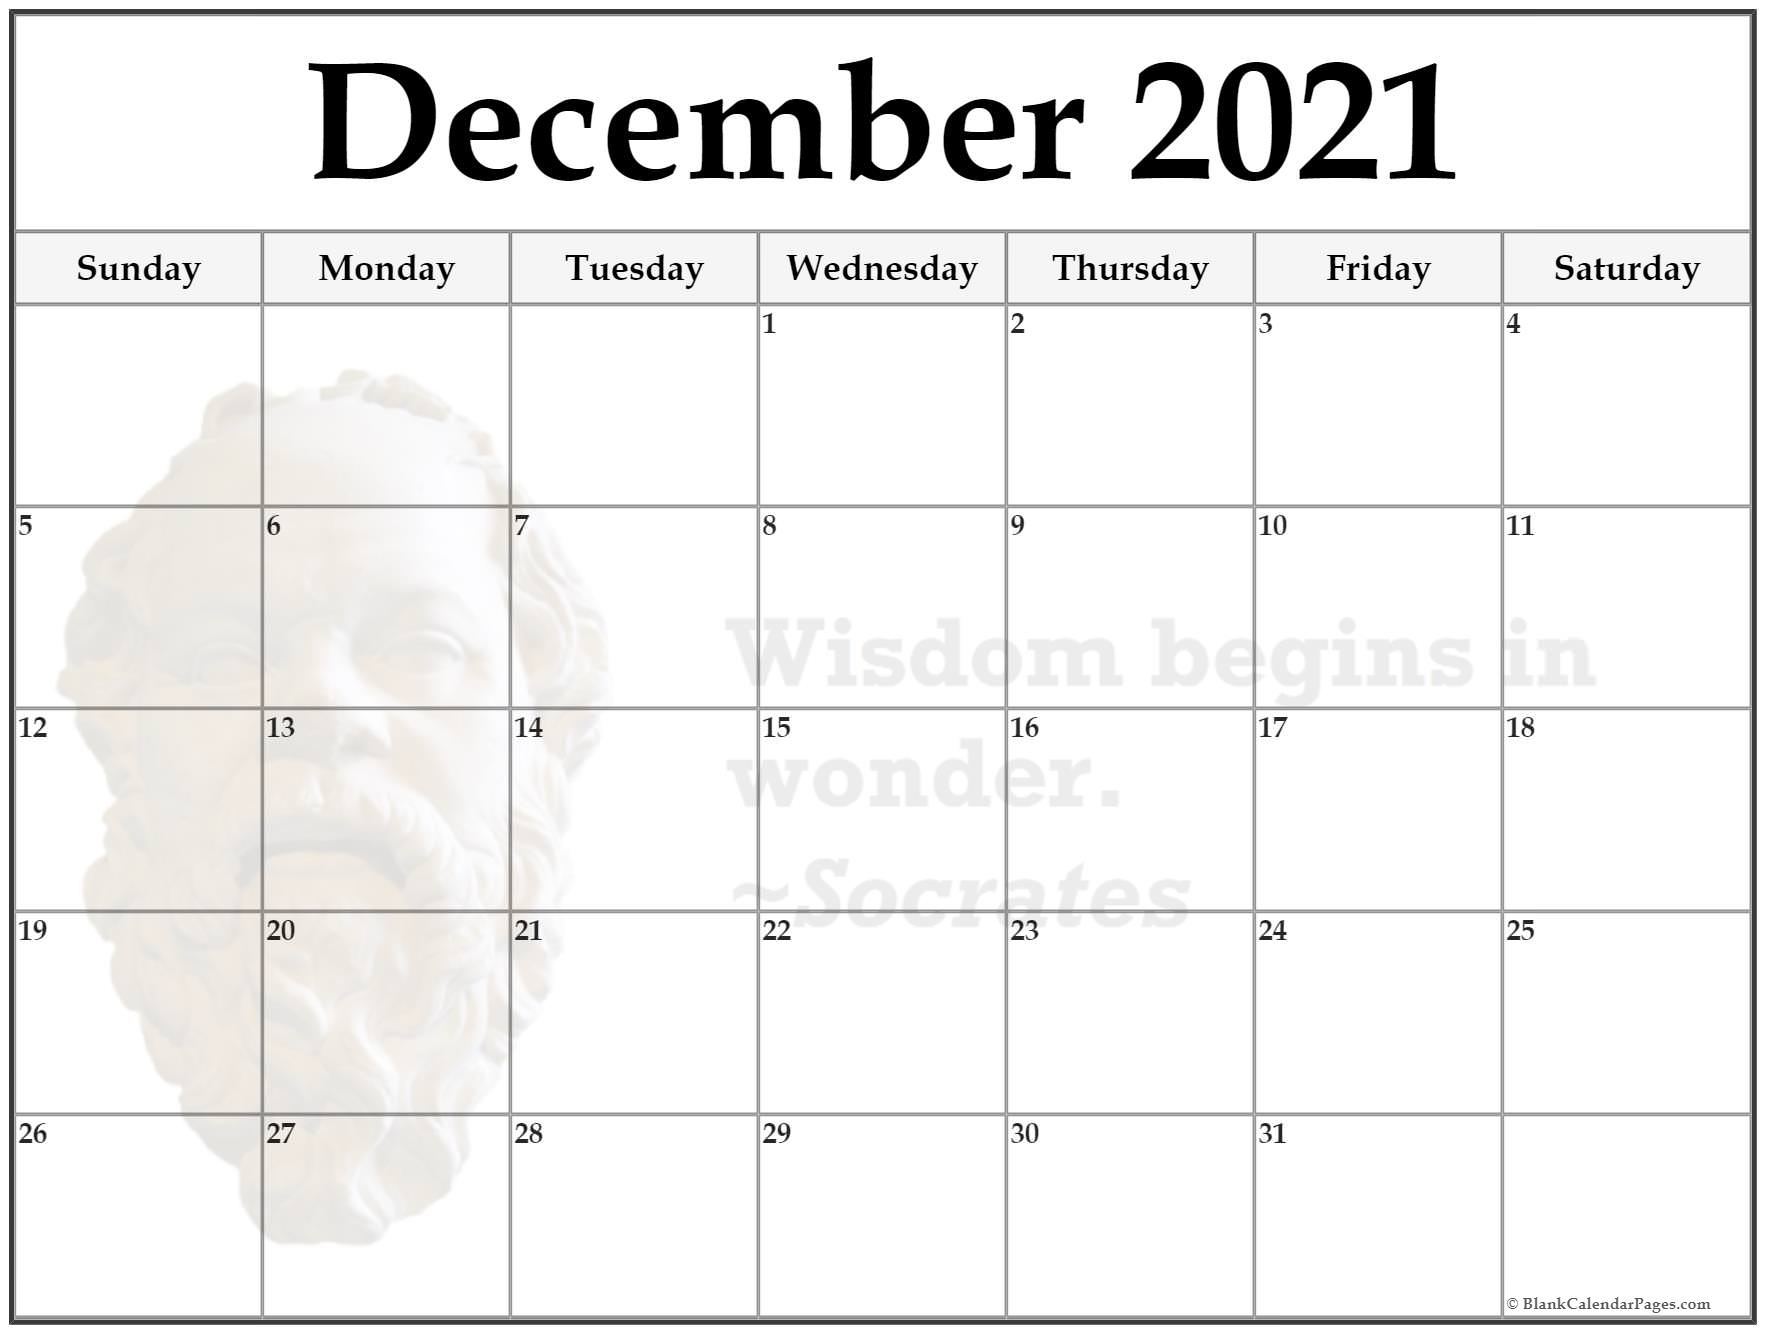 December 2021 monthly quote calendar template. Wisdom begins in wonder. ~Socrates